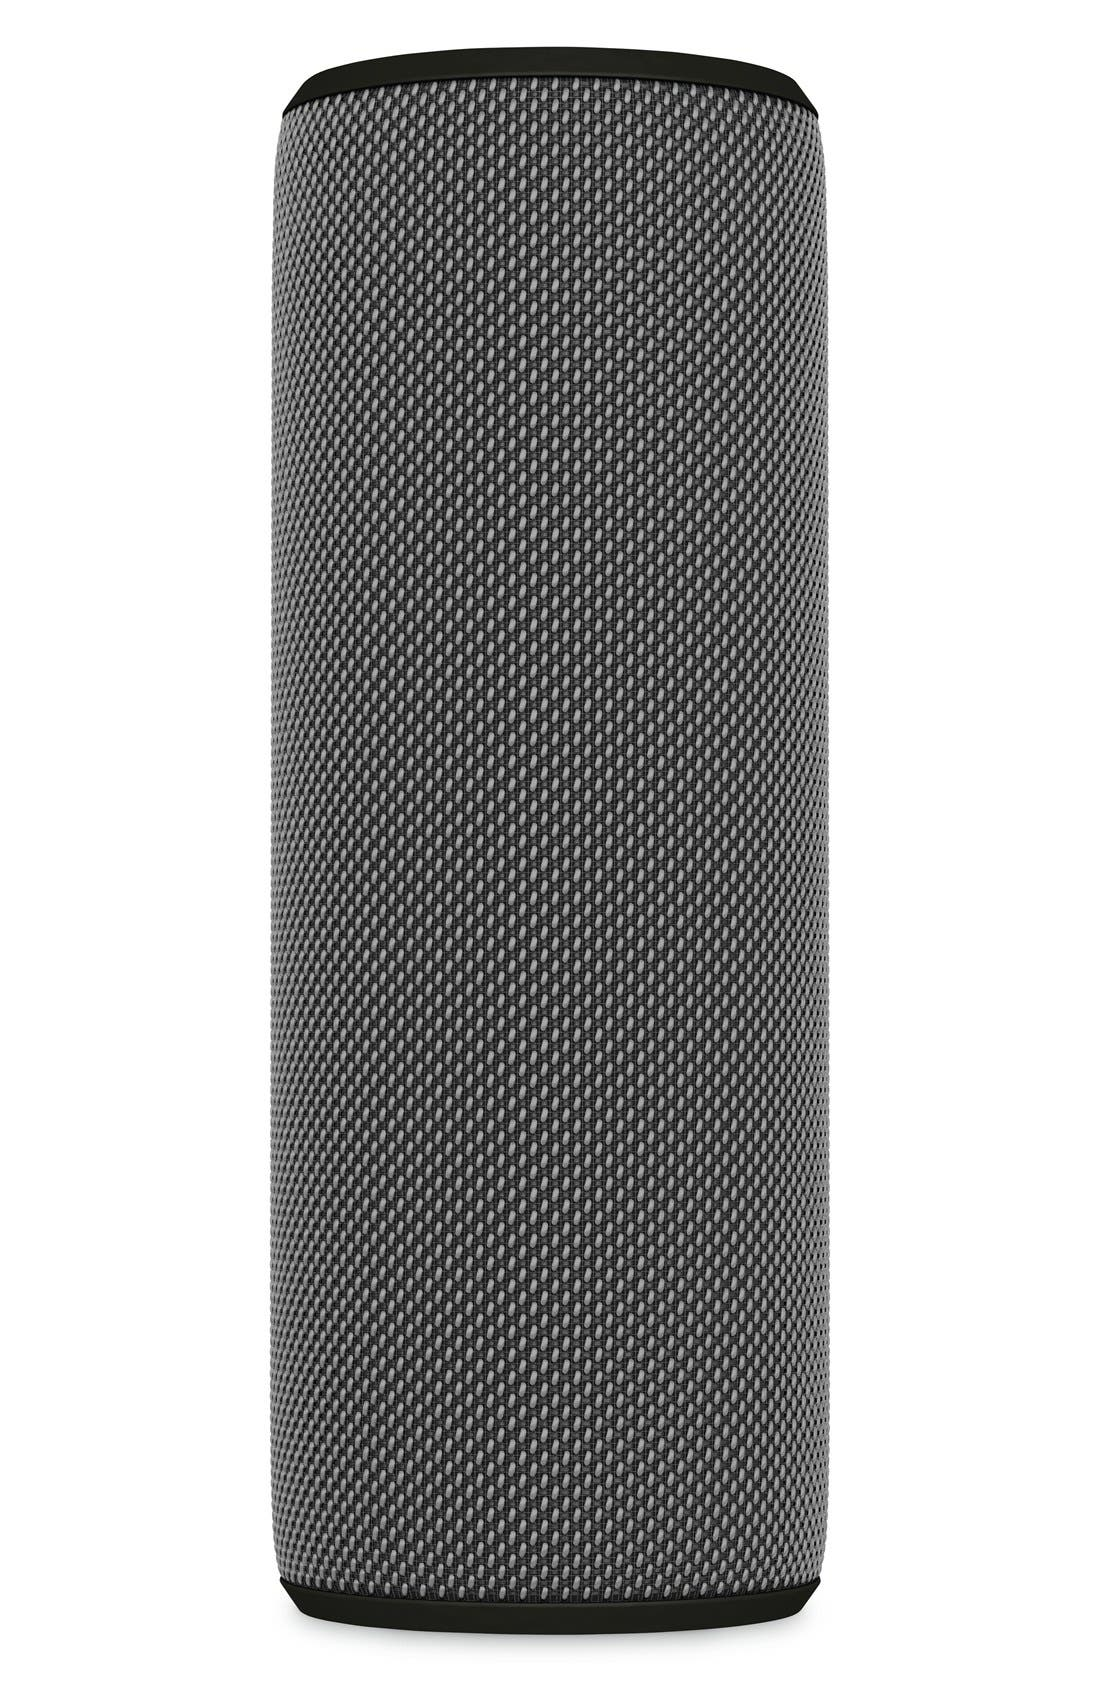 Megaboom Wireless Bluetooth<sup>®</sup> Speaker,                             Alternate thumbnail 6, color,                             001